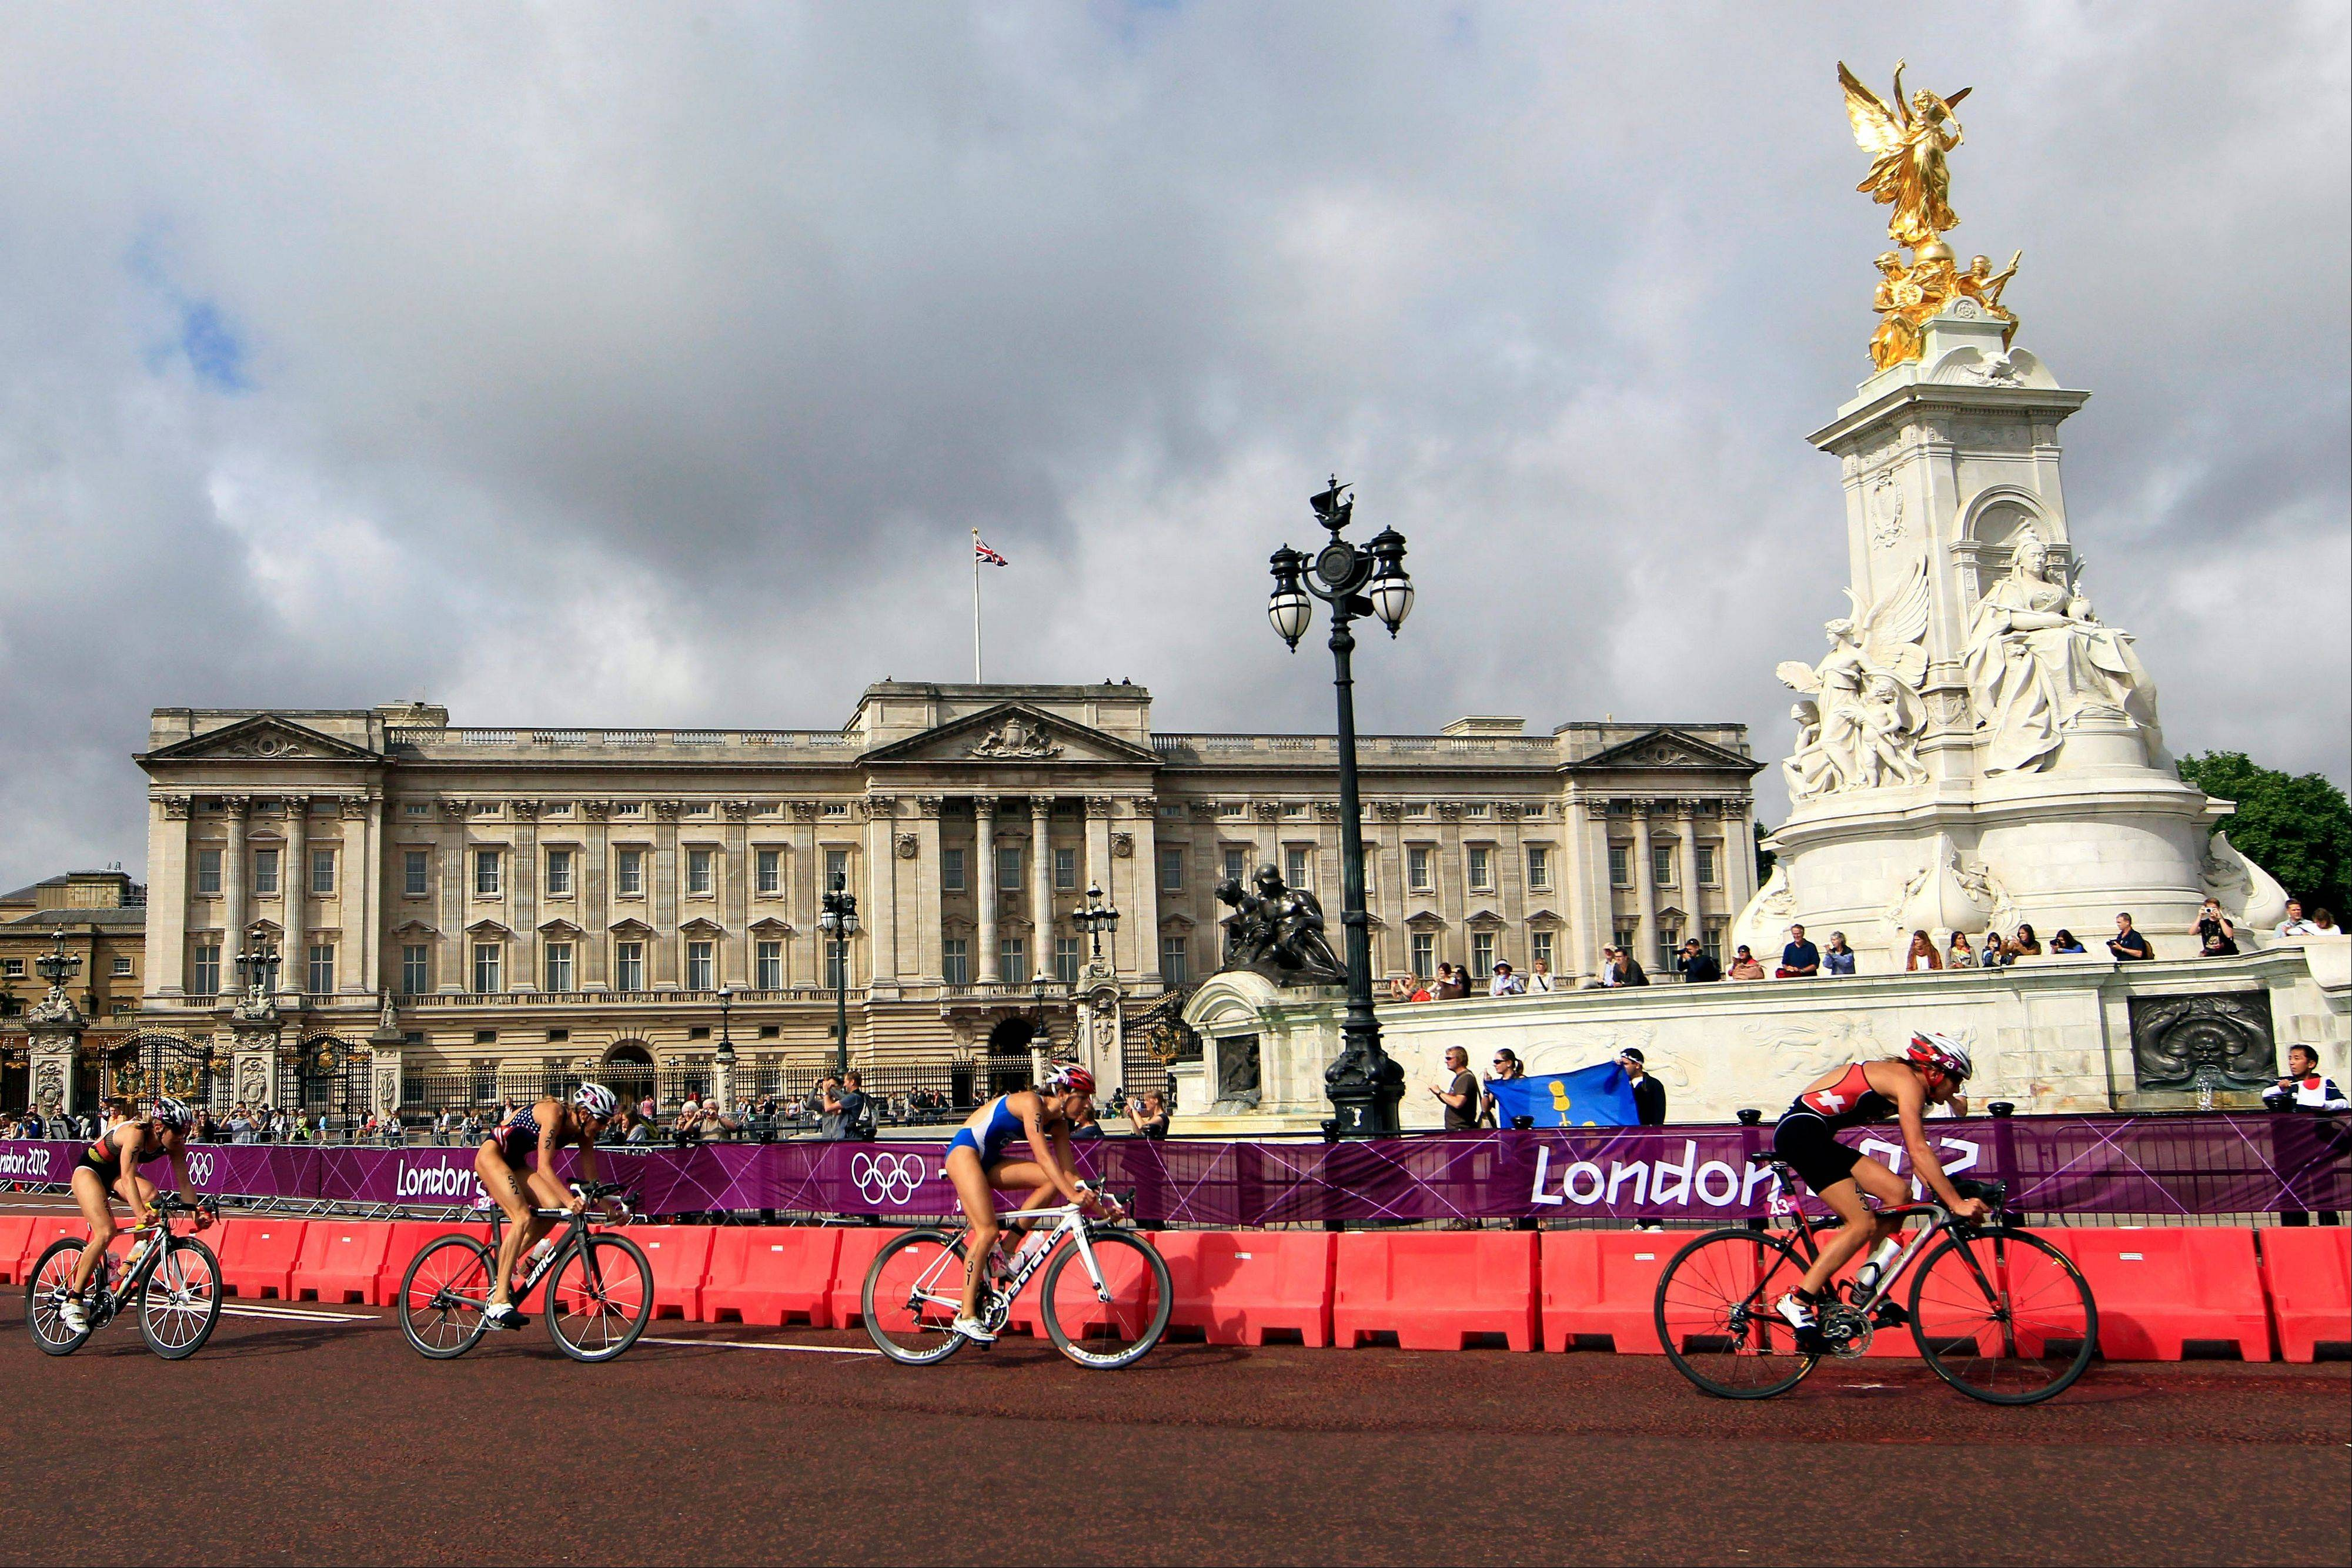 From right, Switzerland's Nicola Spirig leads Czech Republic's Radka Vodickova, United States Laura Bennett, and Germany's Svenja Bazlen pass Buckingham Palace in London during the cycling portion of the women's triathlon at the 2012 Summer Olympics, Saturday, Aug. 4, 2012.